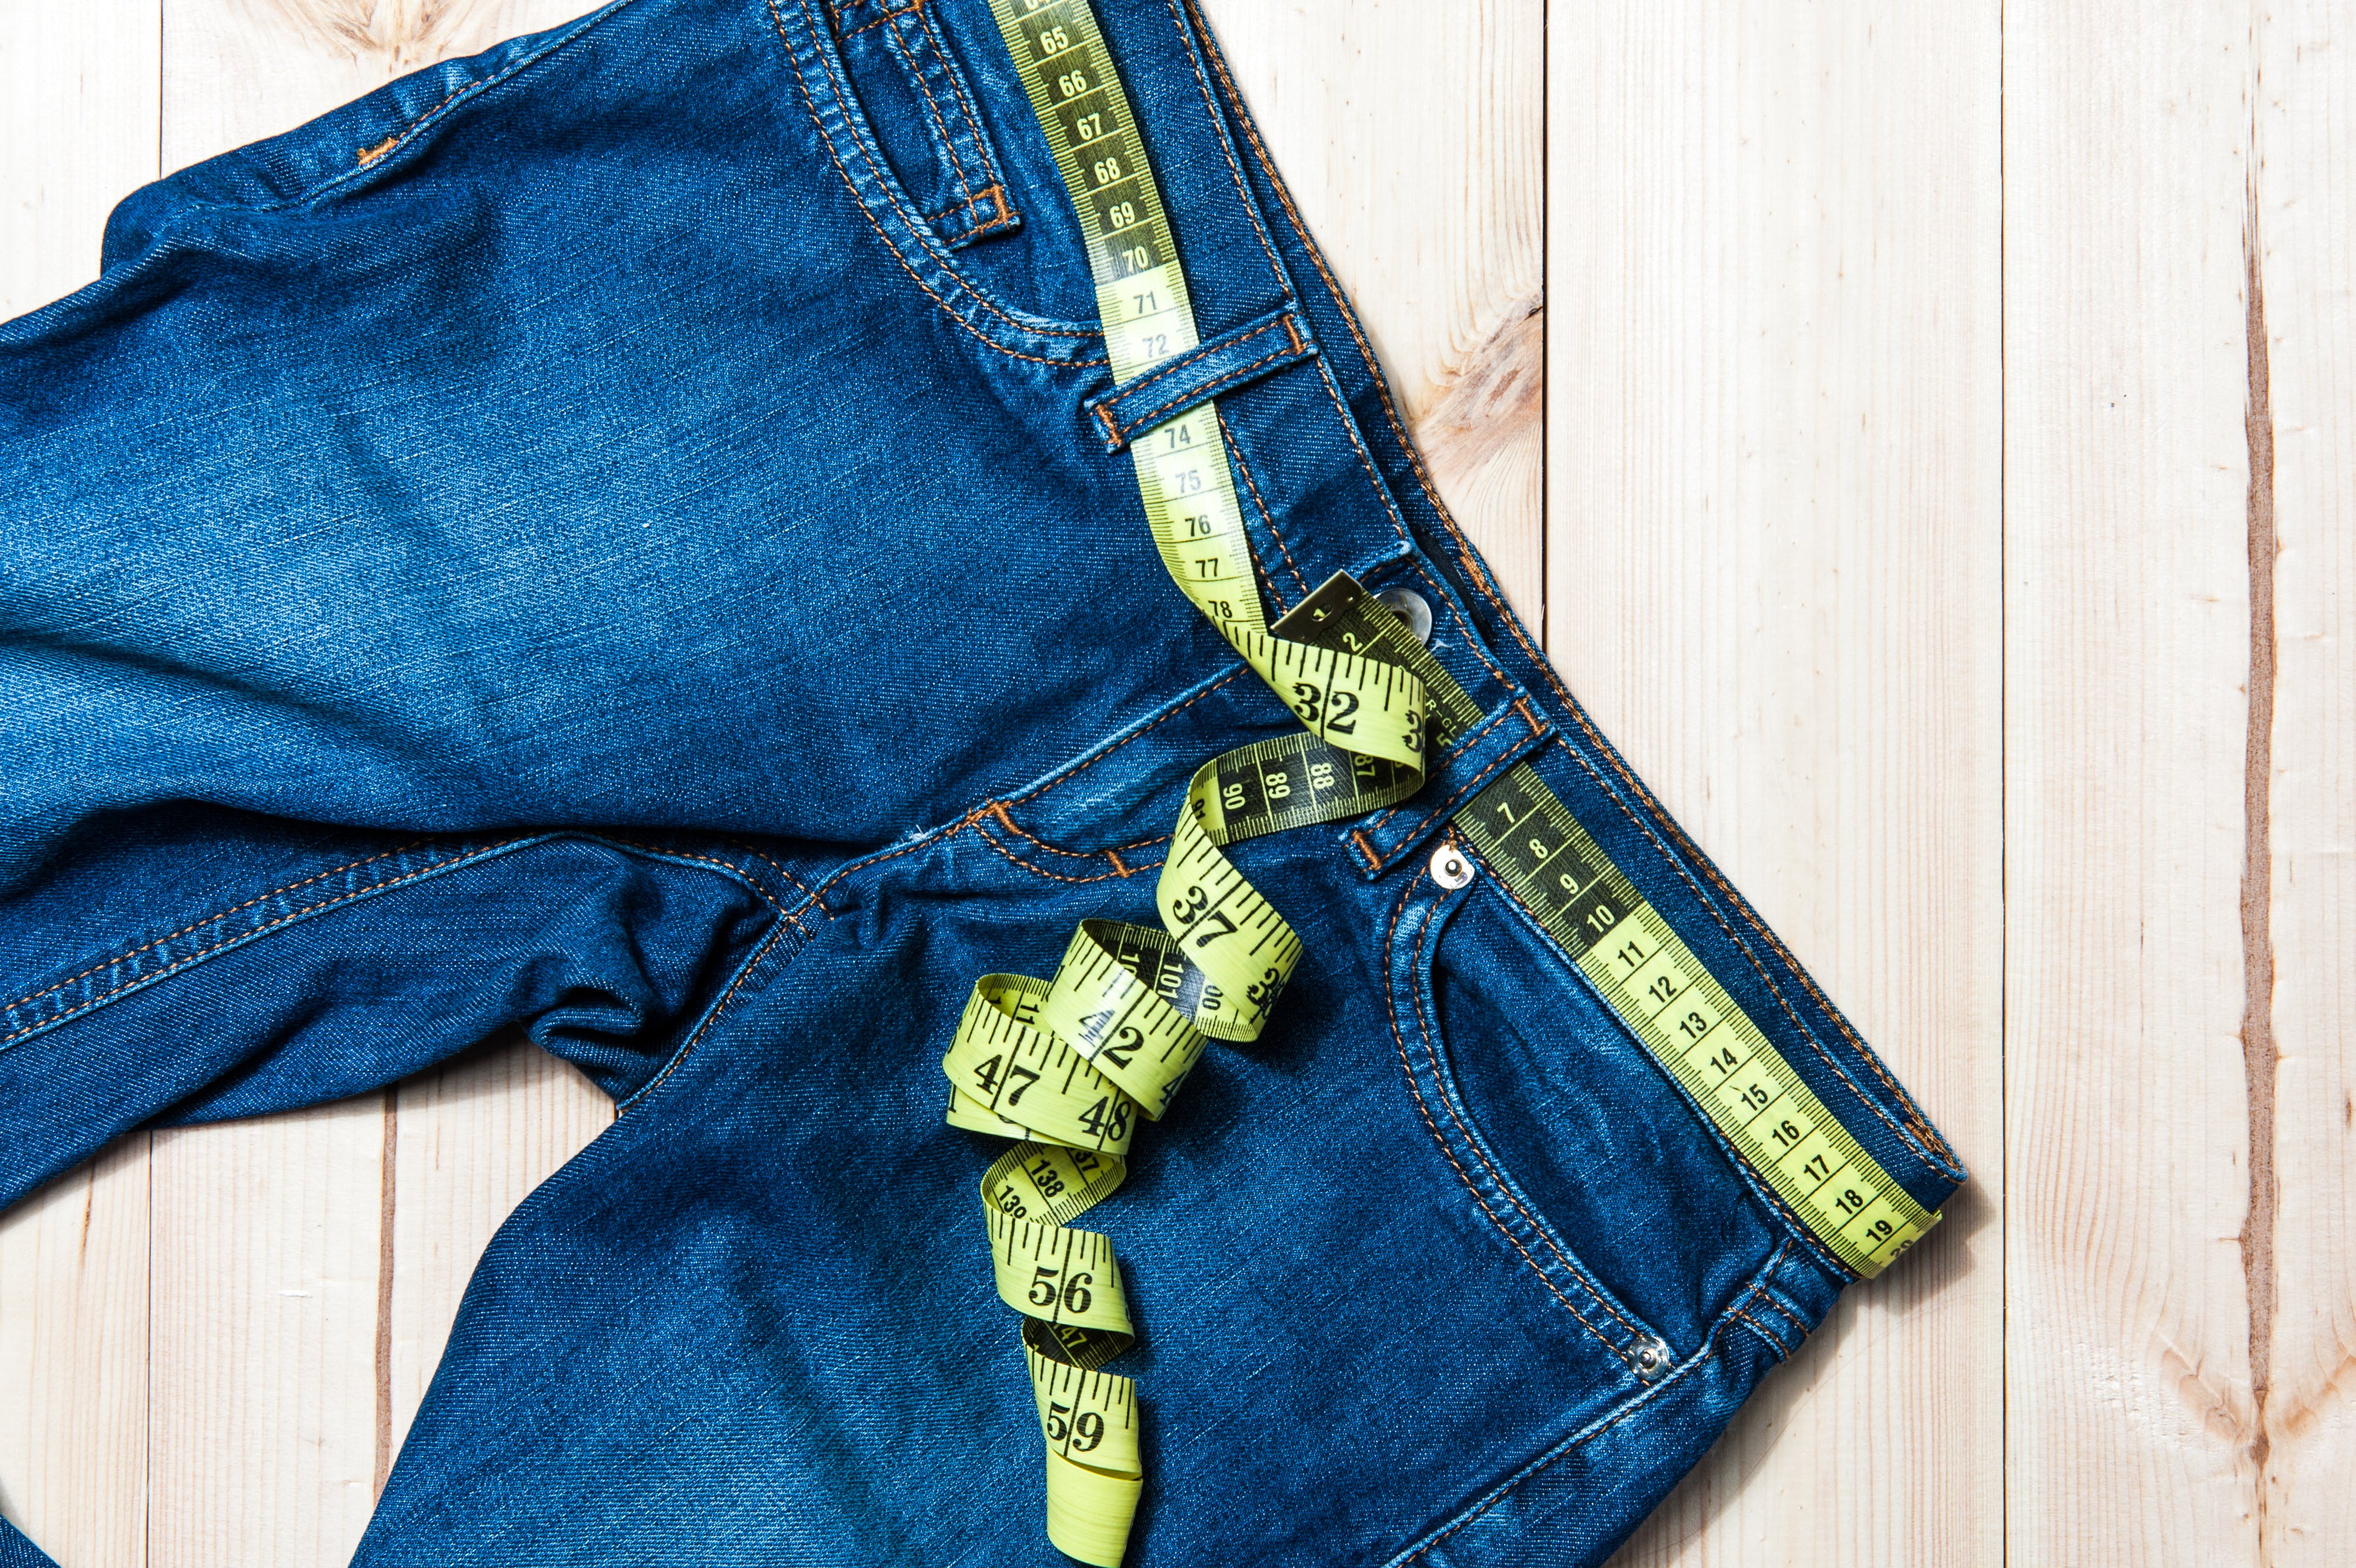 jeans and centimeter on a wooden background